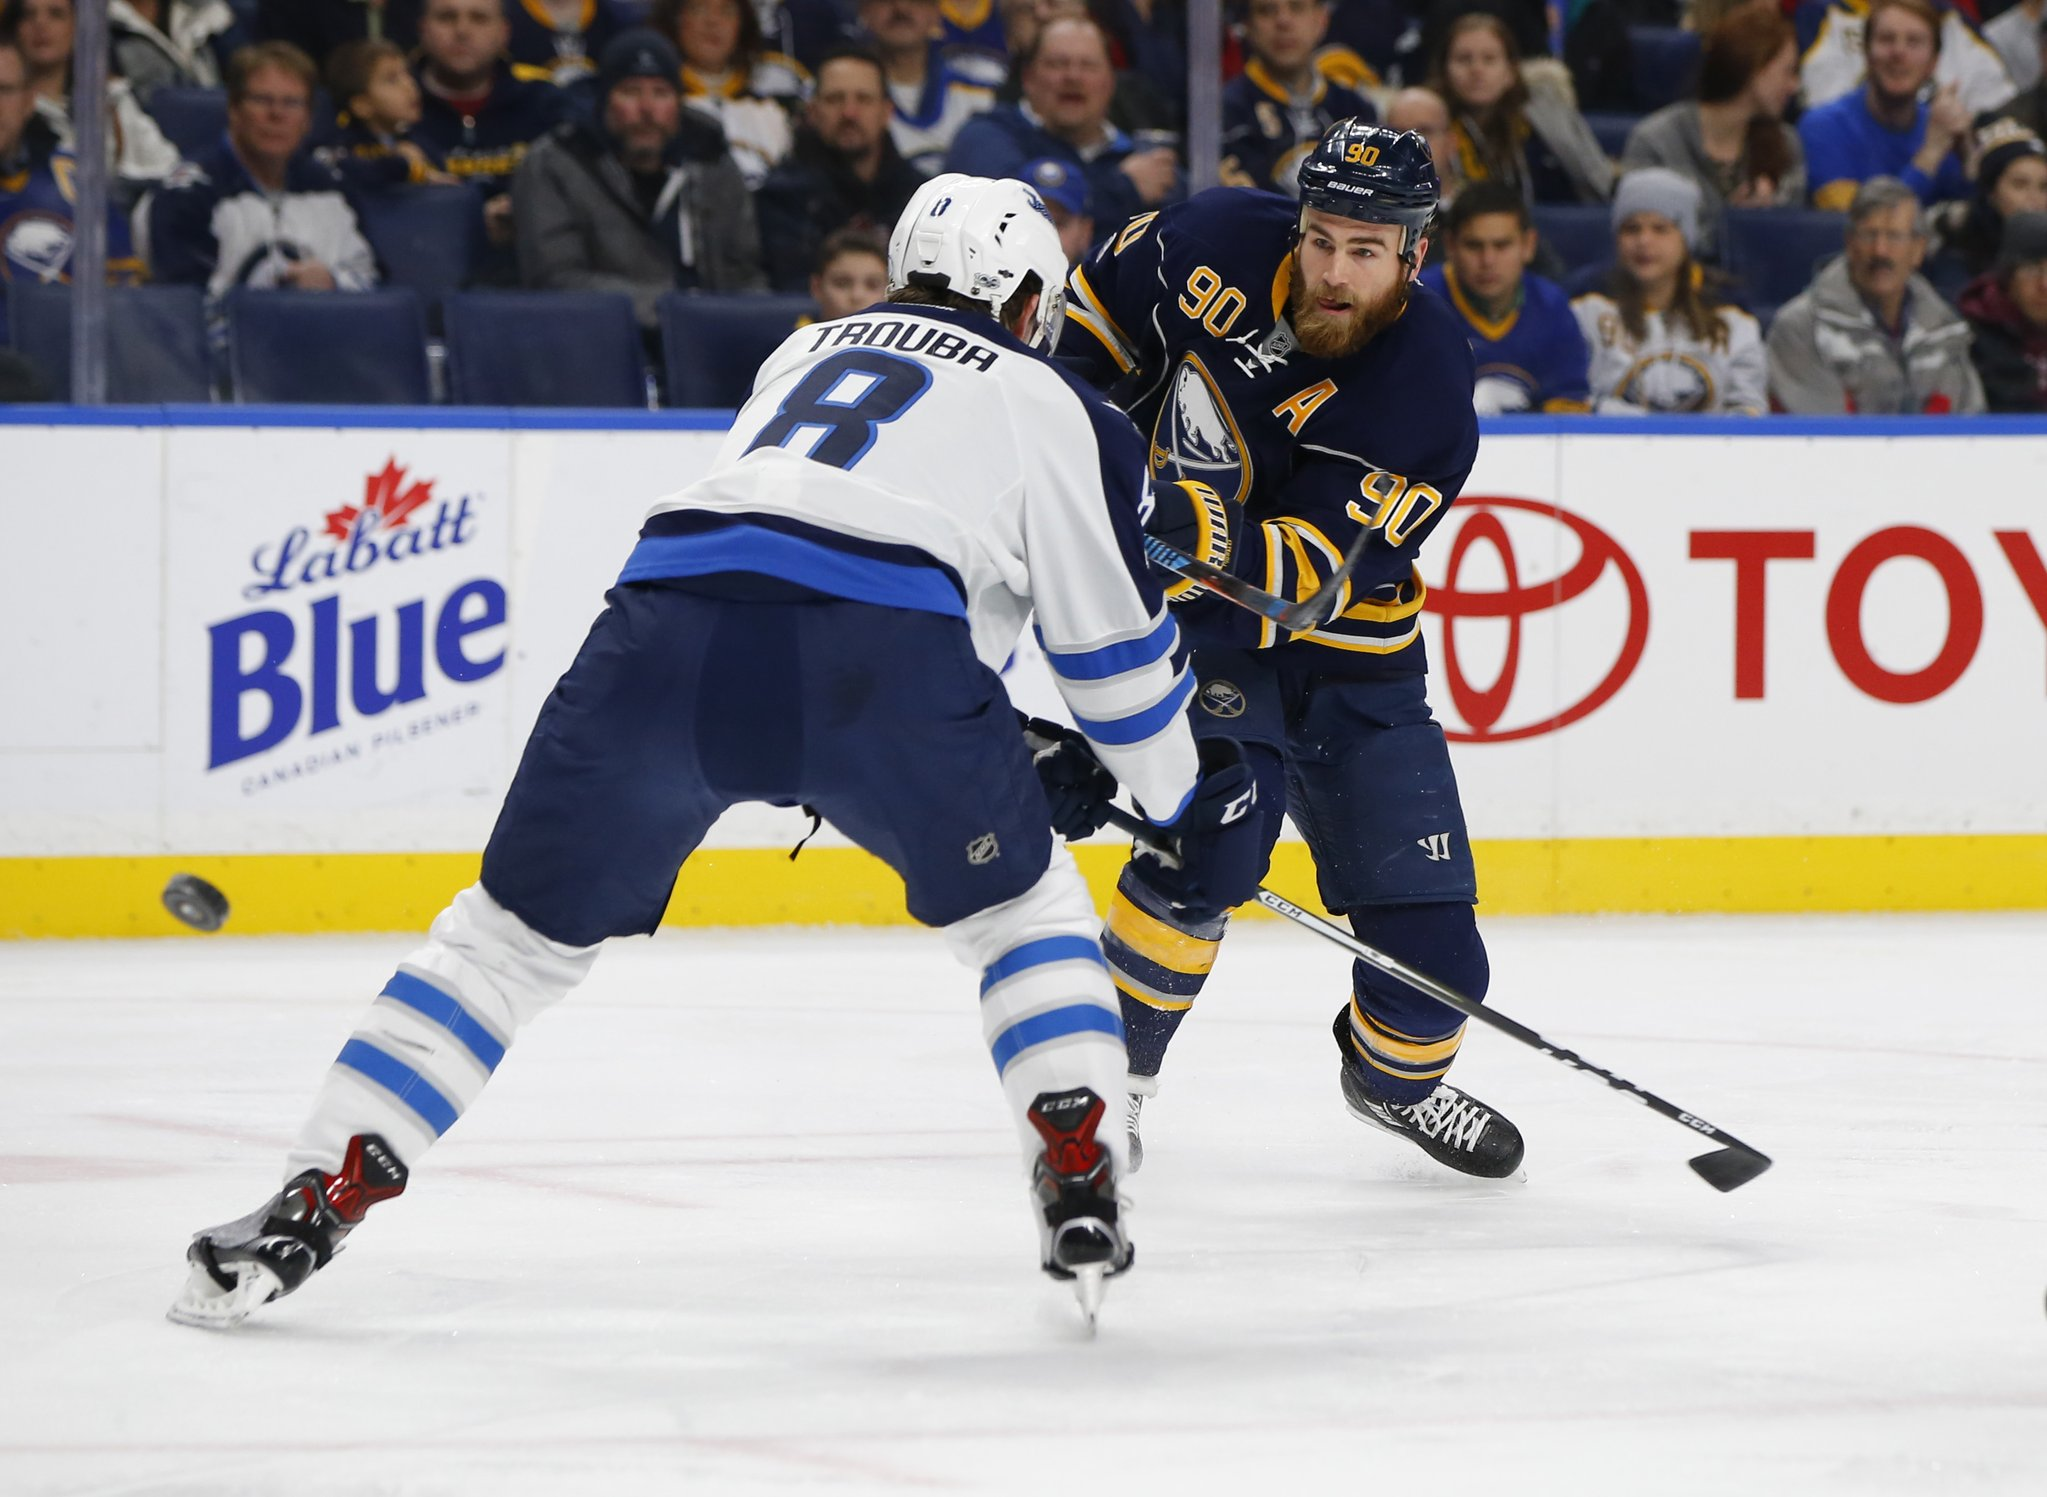 The Sabres and Ryan O'Reilly went after Jacob Trouba and the Jets after two poor periods. (Harry Scull Jr./Buffalo News)